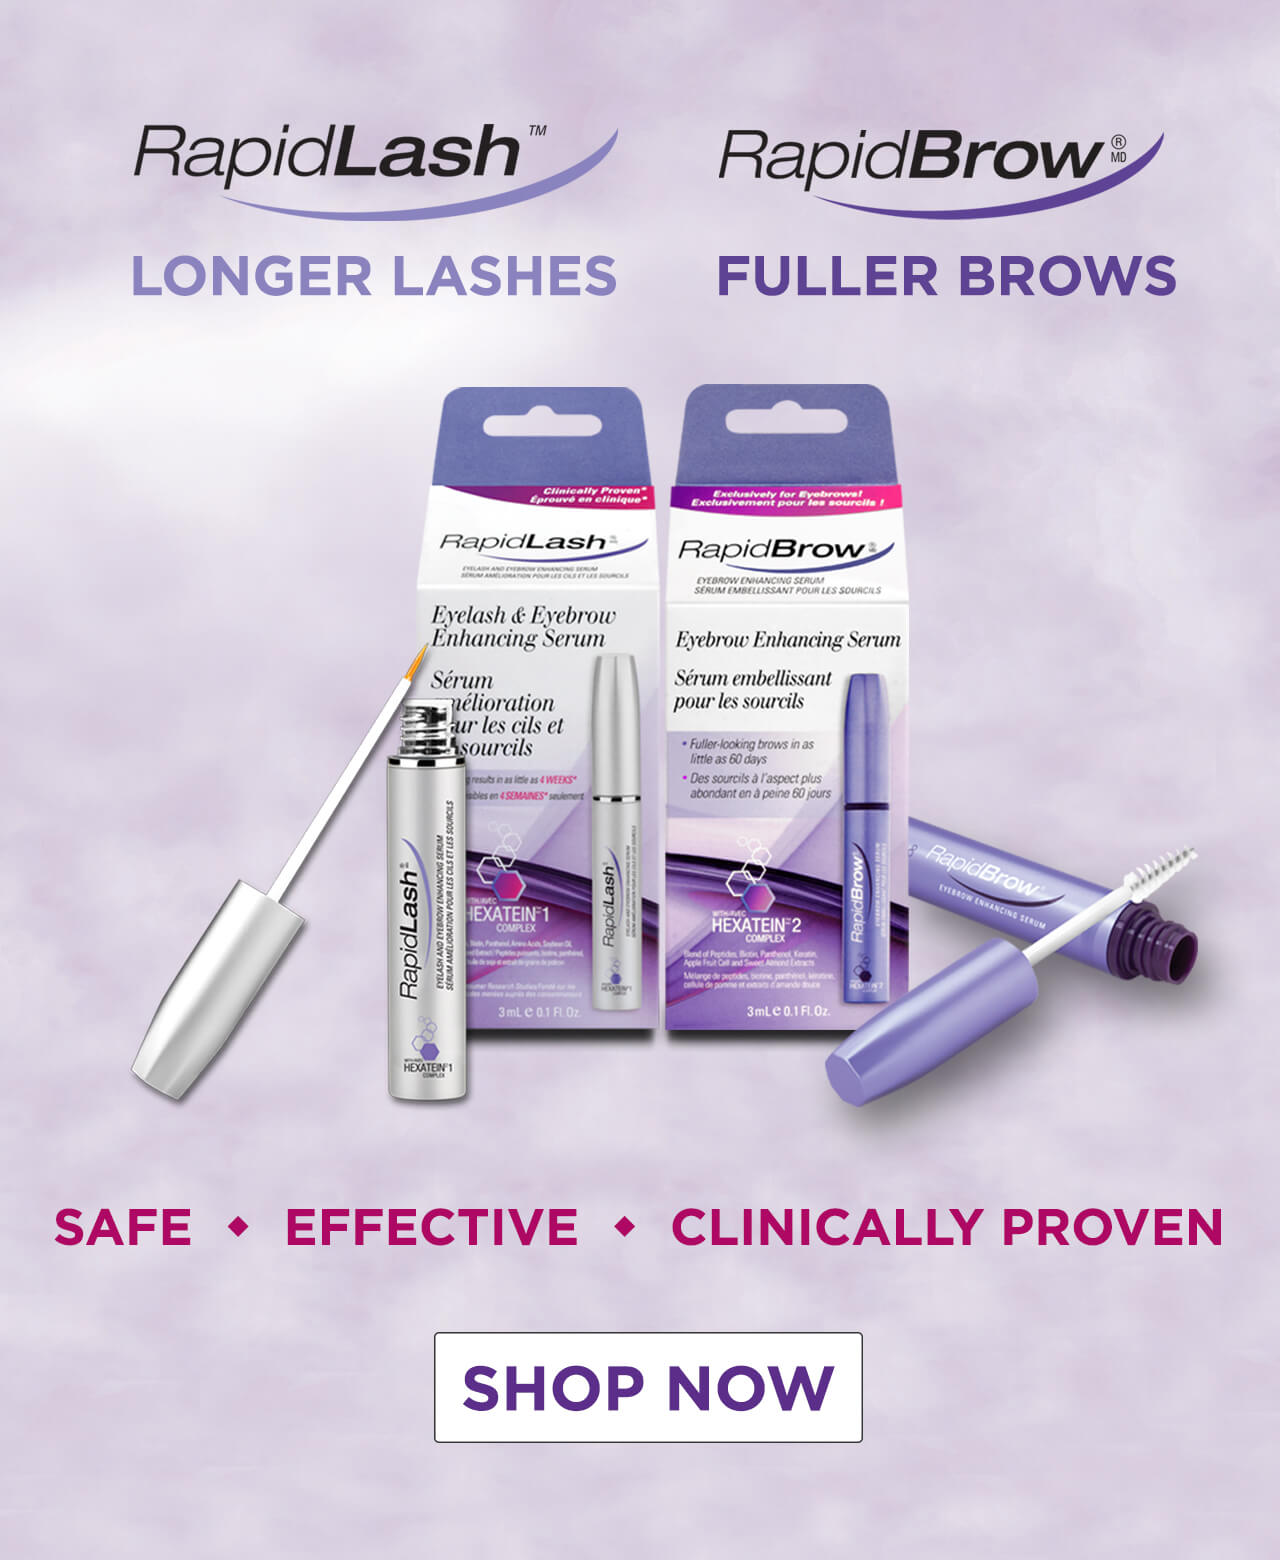 RapidLash RapidBrow